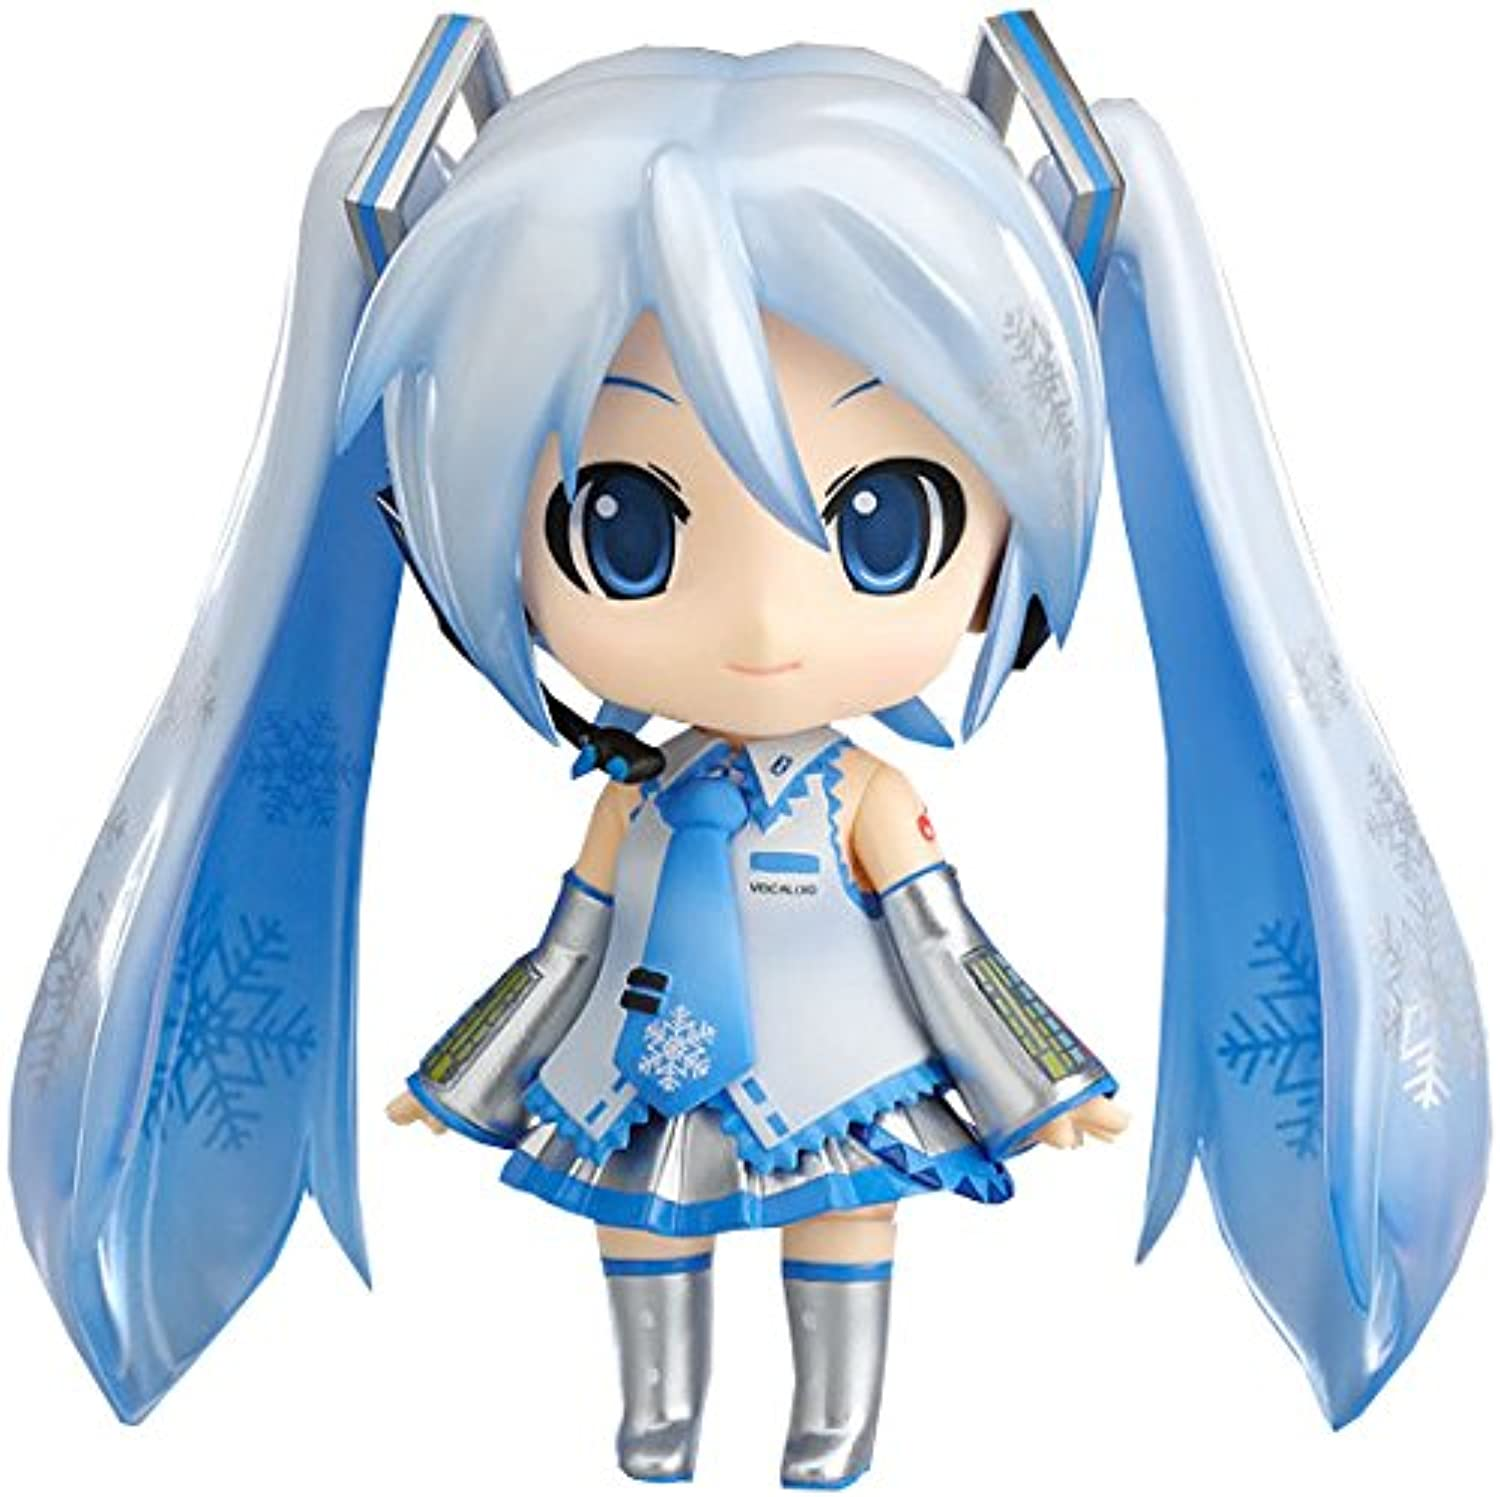 VOCALOID Snow Miku Hatsune Nendgoldid Action Figure [Wonder Festival 2010 Winter Limited] (japan import)